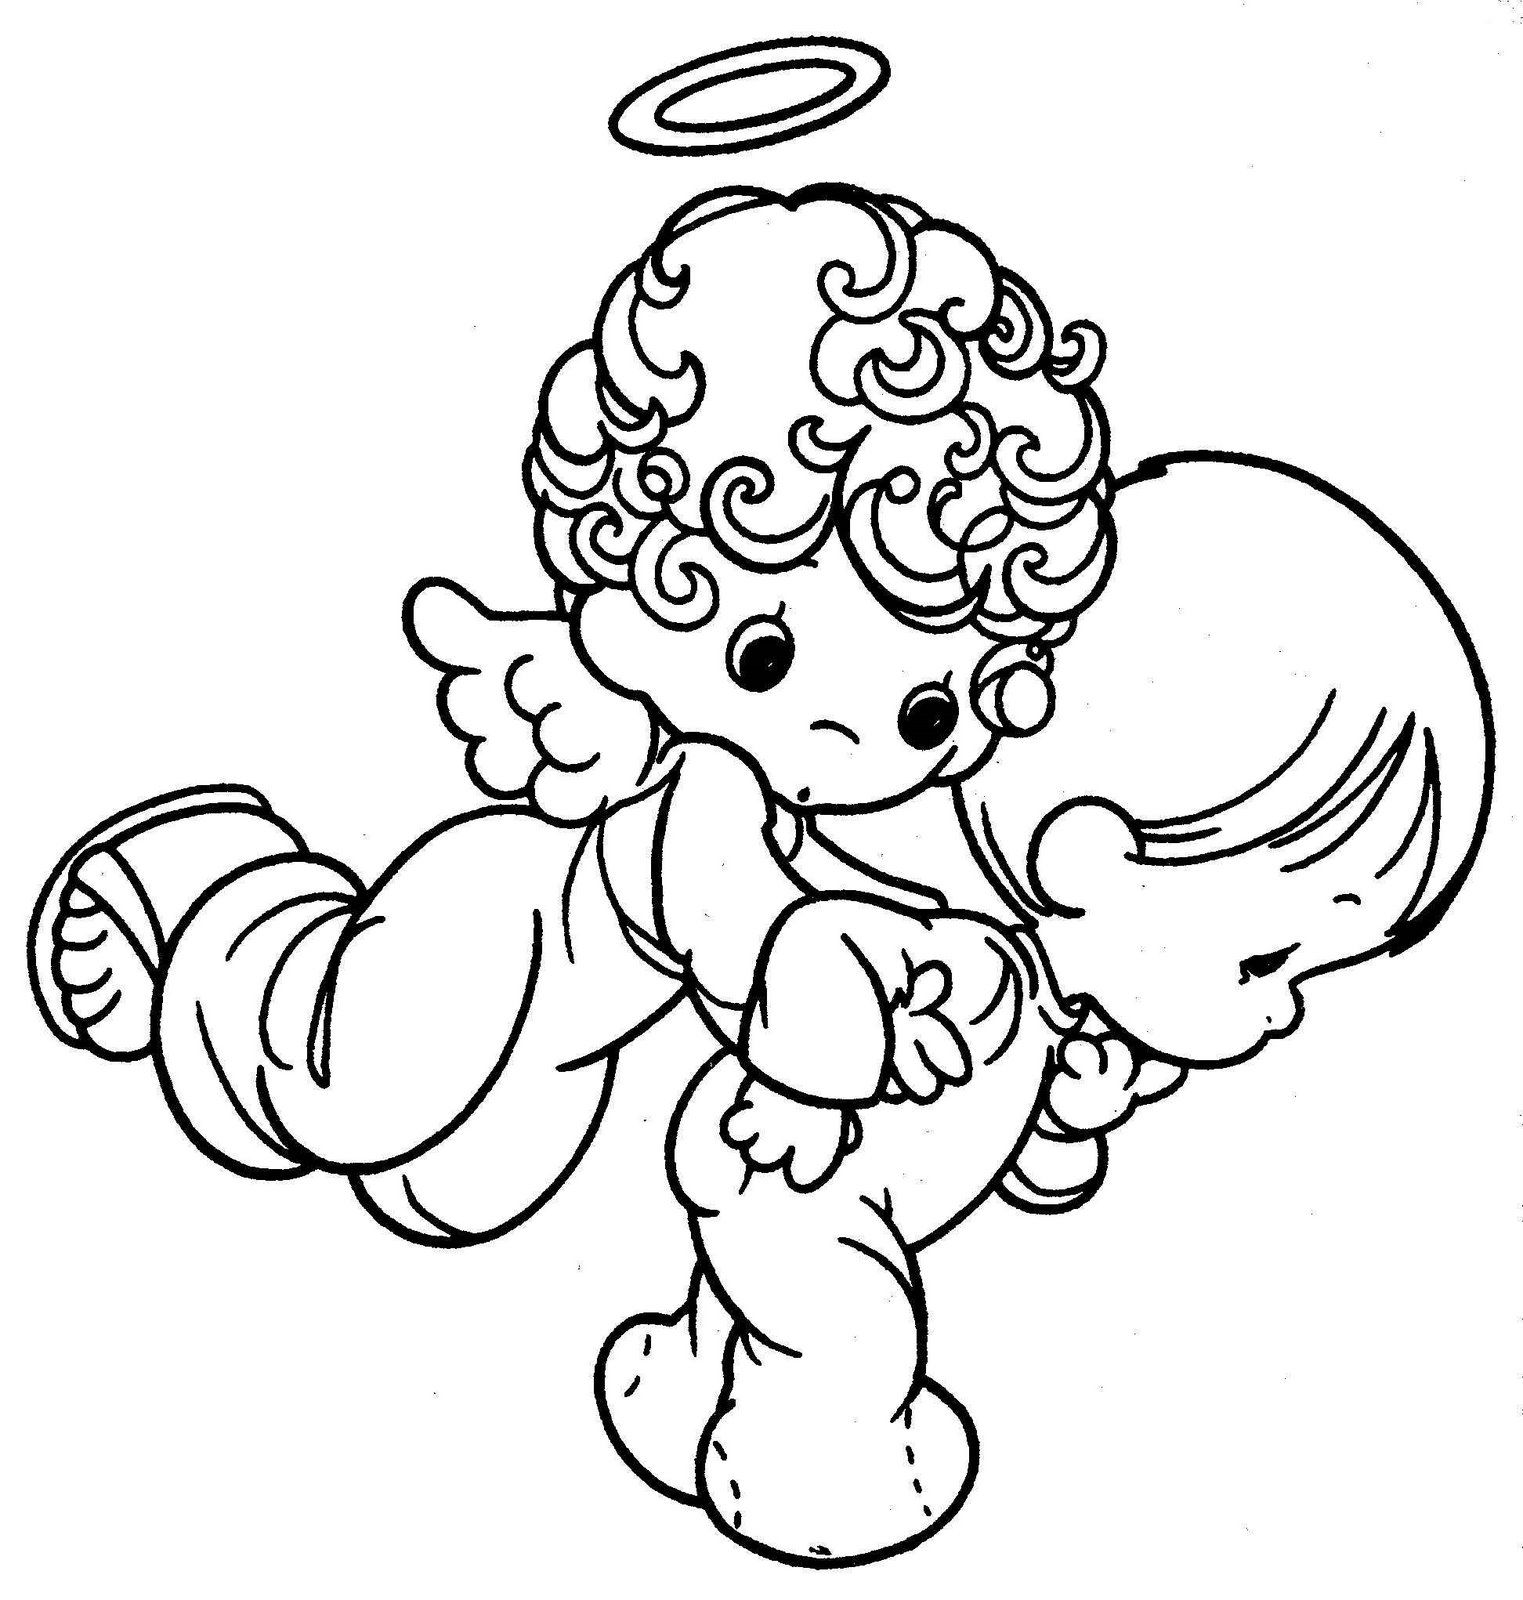 mother coloring pages preciosos momentos angel cargando a un